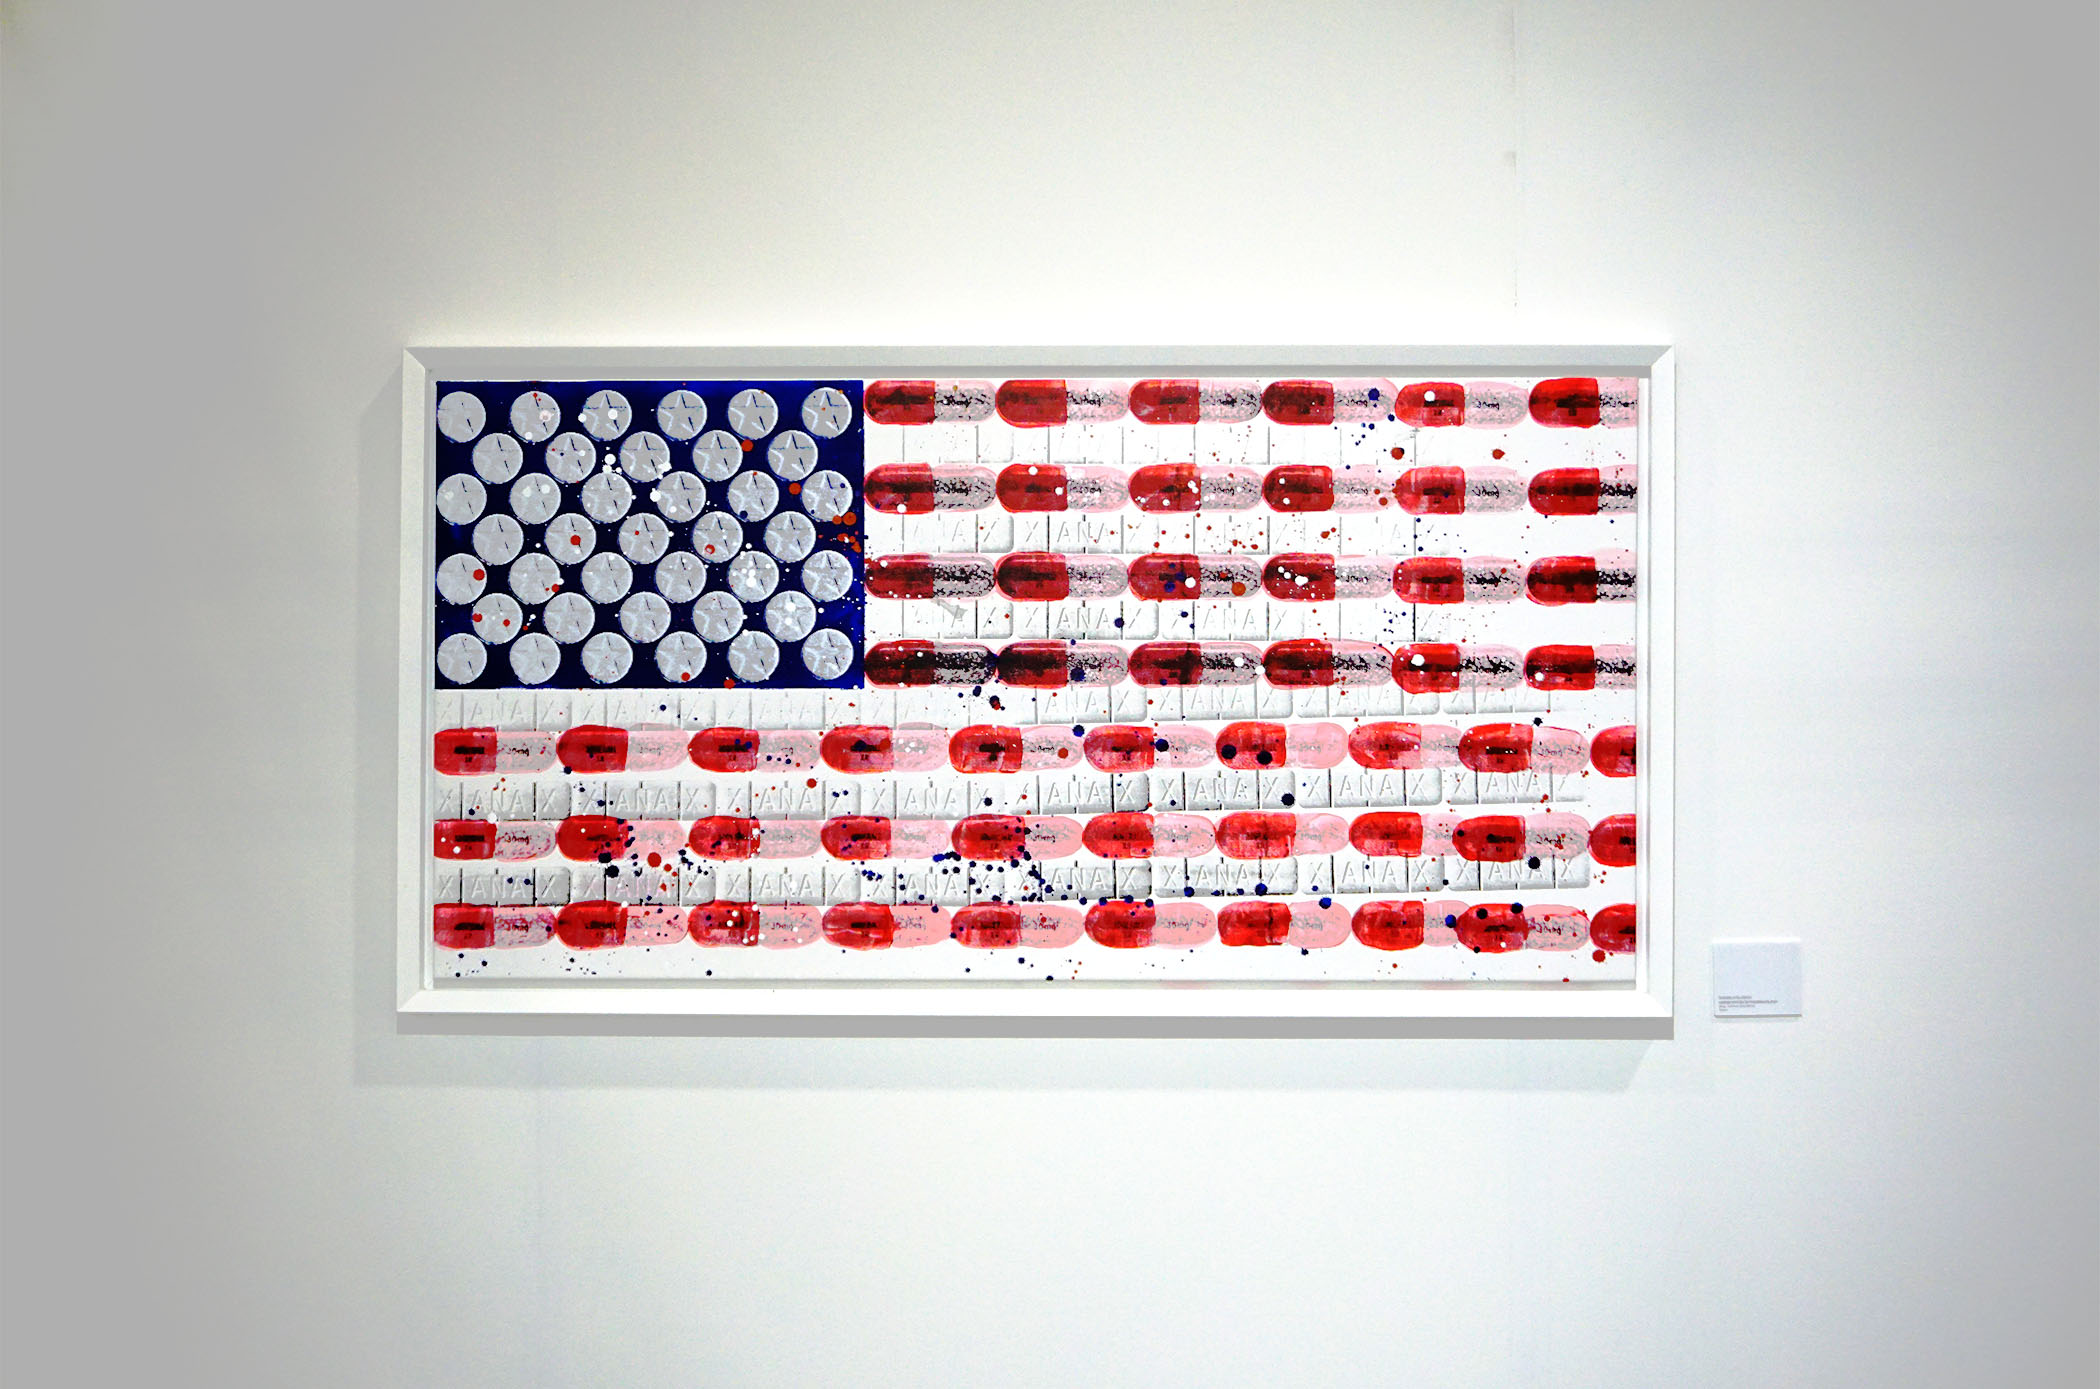 united states of pharmacology - Series of 5, 58 x 29, Acrylic on Canvas1 Available |Buyer Inquiry